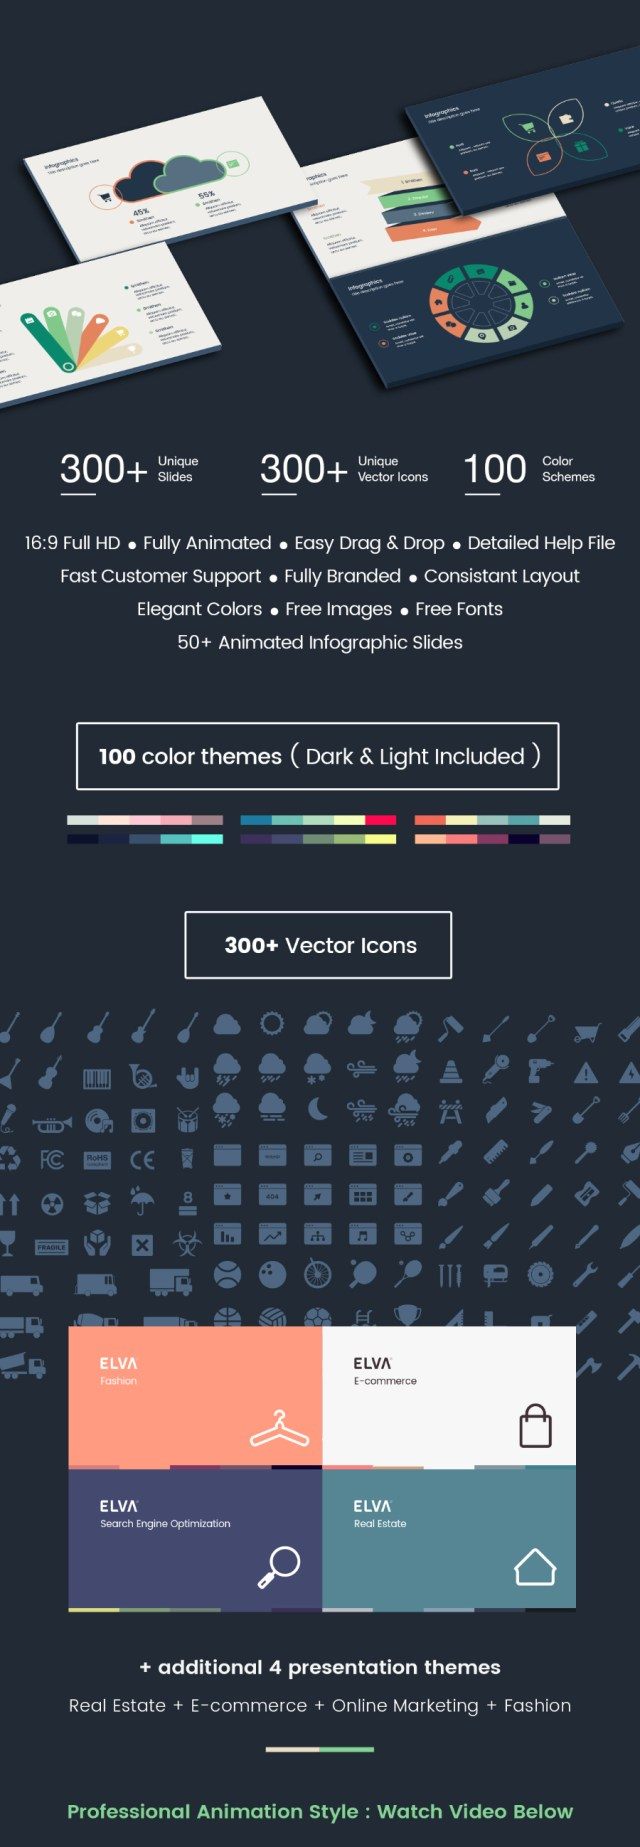 Elva free powerpoint presentation template free design resources elva free powerpoint presentation template elva free powerpoint presentation template toneelgroepblik Choice Image